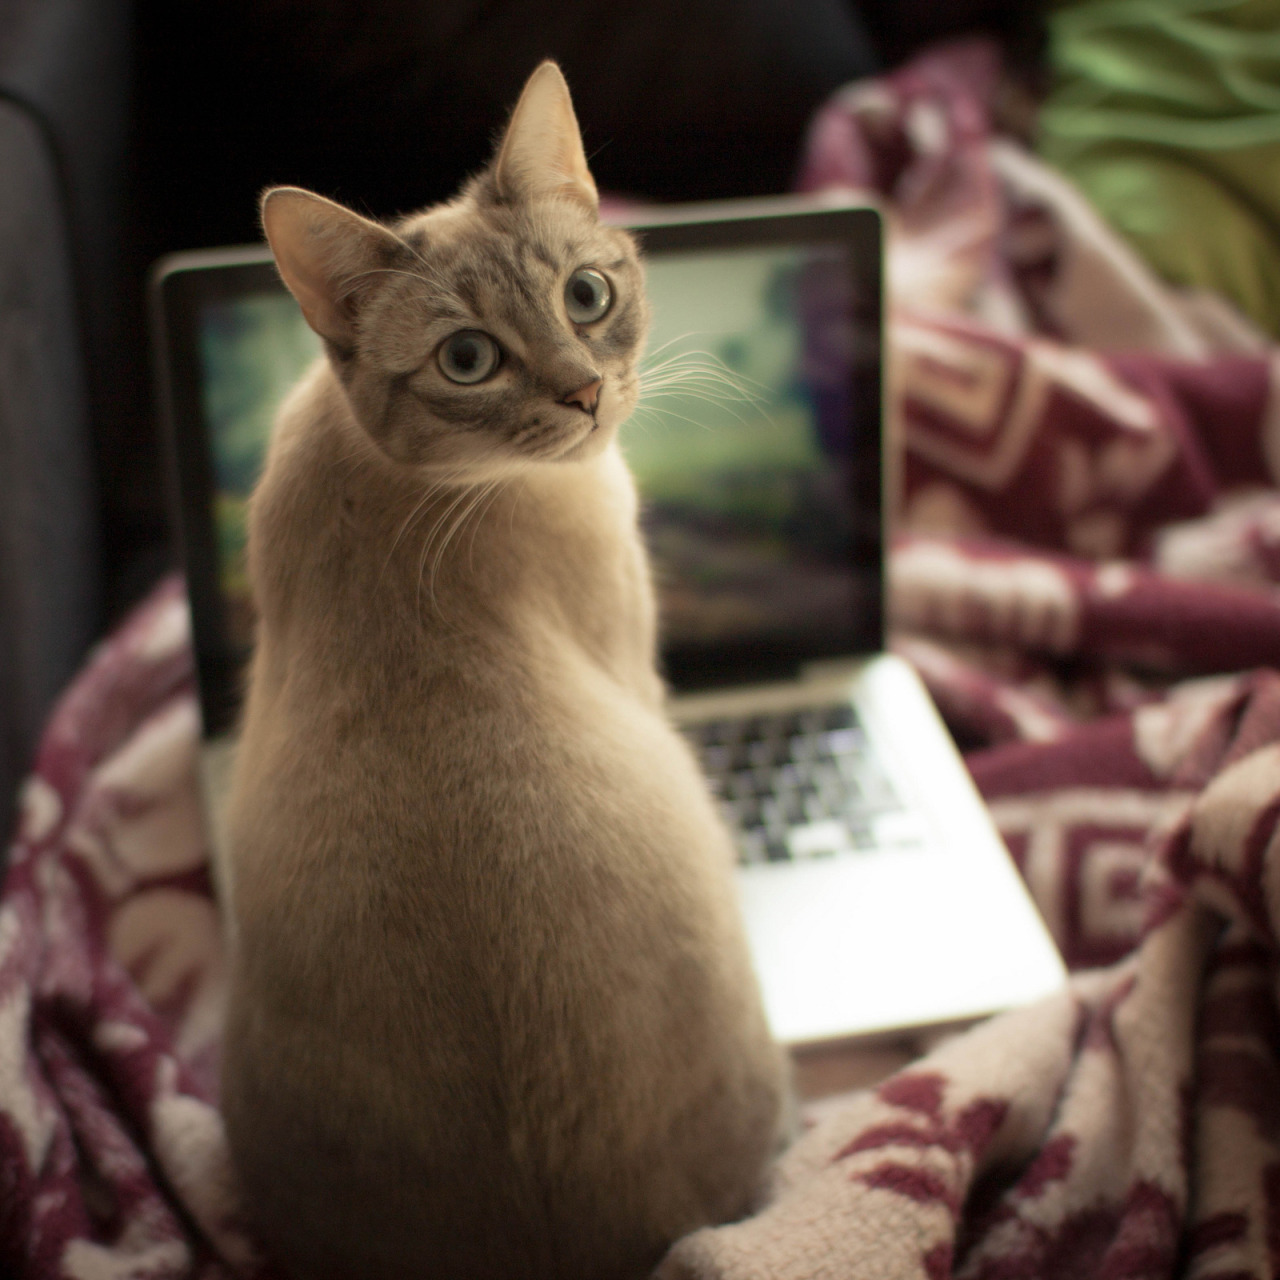 "thefluffingtonpost:  Kitten Puts Finishing Touches on Memoir Though Evie the cat is only two years old, she's already experienced a lot. There was the time the can opener broke, there was the incident with the toad that got into the basement, there was her harrowing run-in with the vacuum — just to name a few. That's why Evie has decided to put it all down on paper. ""She just finished off the first draft last night,"" confirmed Joel Turtledove, acquisitions editor at HarperCollins, which gave the kitten a $250,000 advance — unheard of for a memoir of a relatively obscure figure. ""We think she'll play well in the growing 'stuff about pets' market,"" said Turtledove, citing the recent mega-successes of Boo, Grumpy Cat and Lil Bub.  The manuscript will now go into editing, and HarperCollins expects to release the book this fall. Via Enthuan. This post was originally published on HelloGiggles."